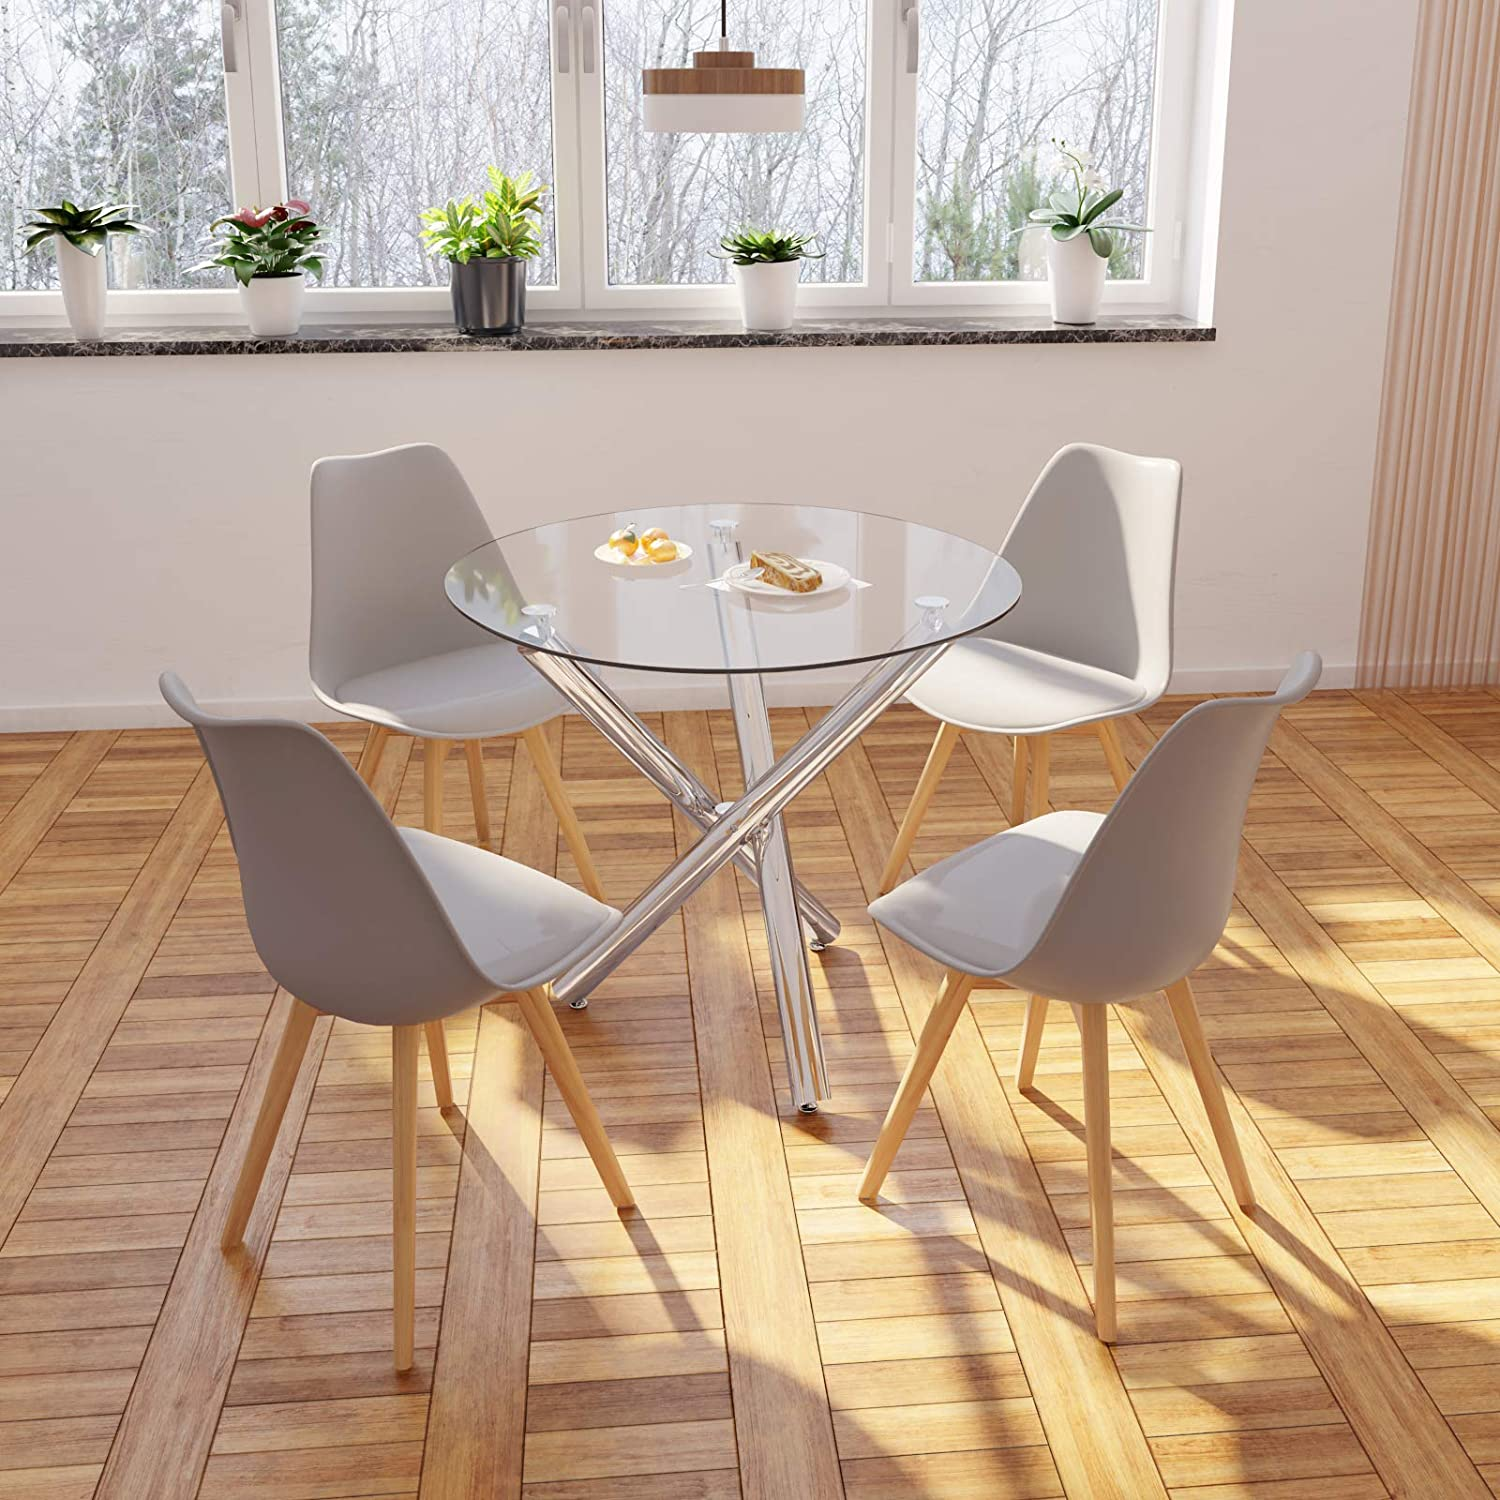 Joolihome Dining Table And 4 Chairs Kitchen Dining Room Sets Furniture For Home Office Glass Round